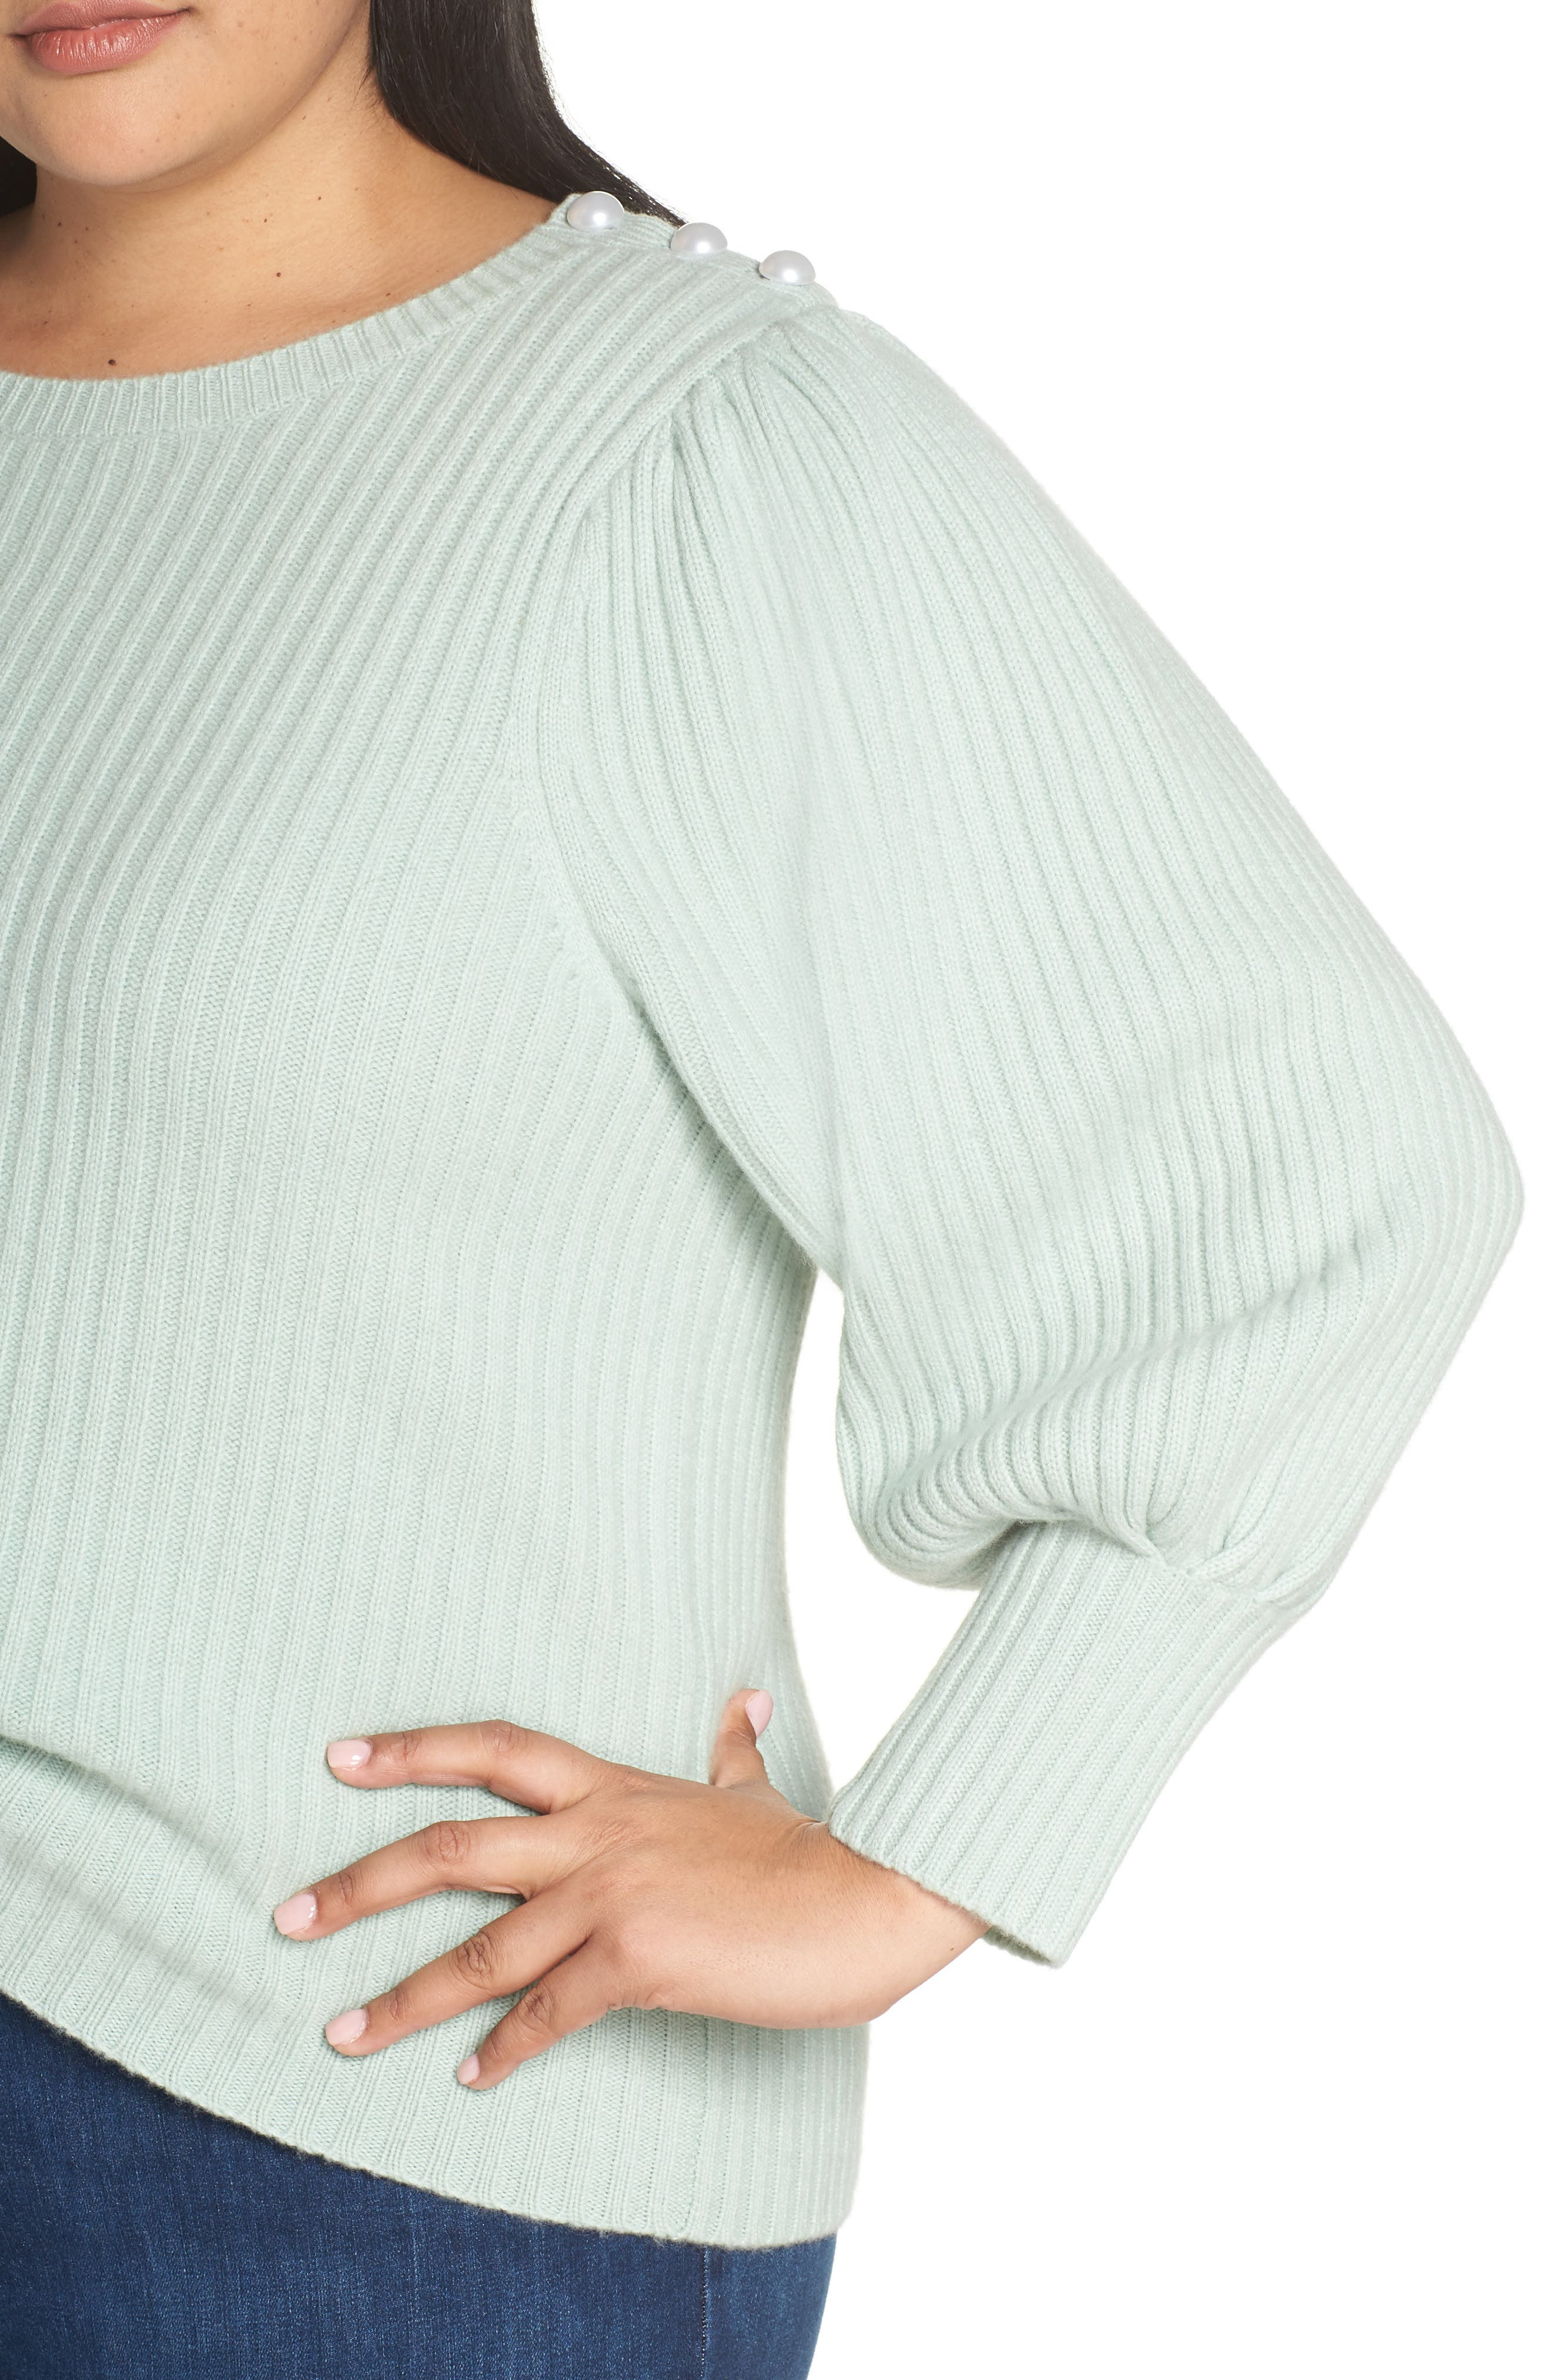 x Atlantic-Pacific Balloon Sleeve Wool & Cashmere Sweater,                             Alternate thumbnail 4, color,                             330